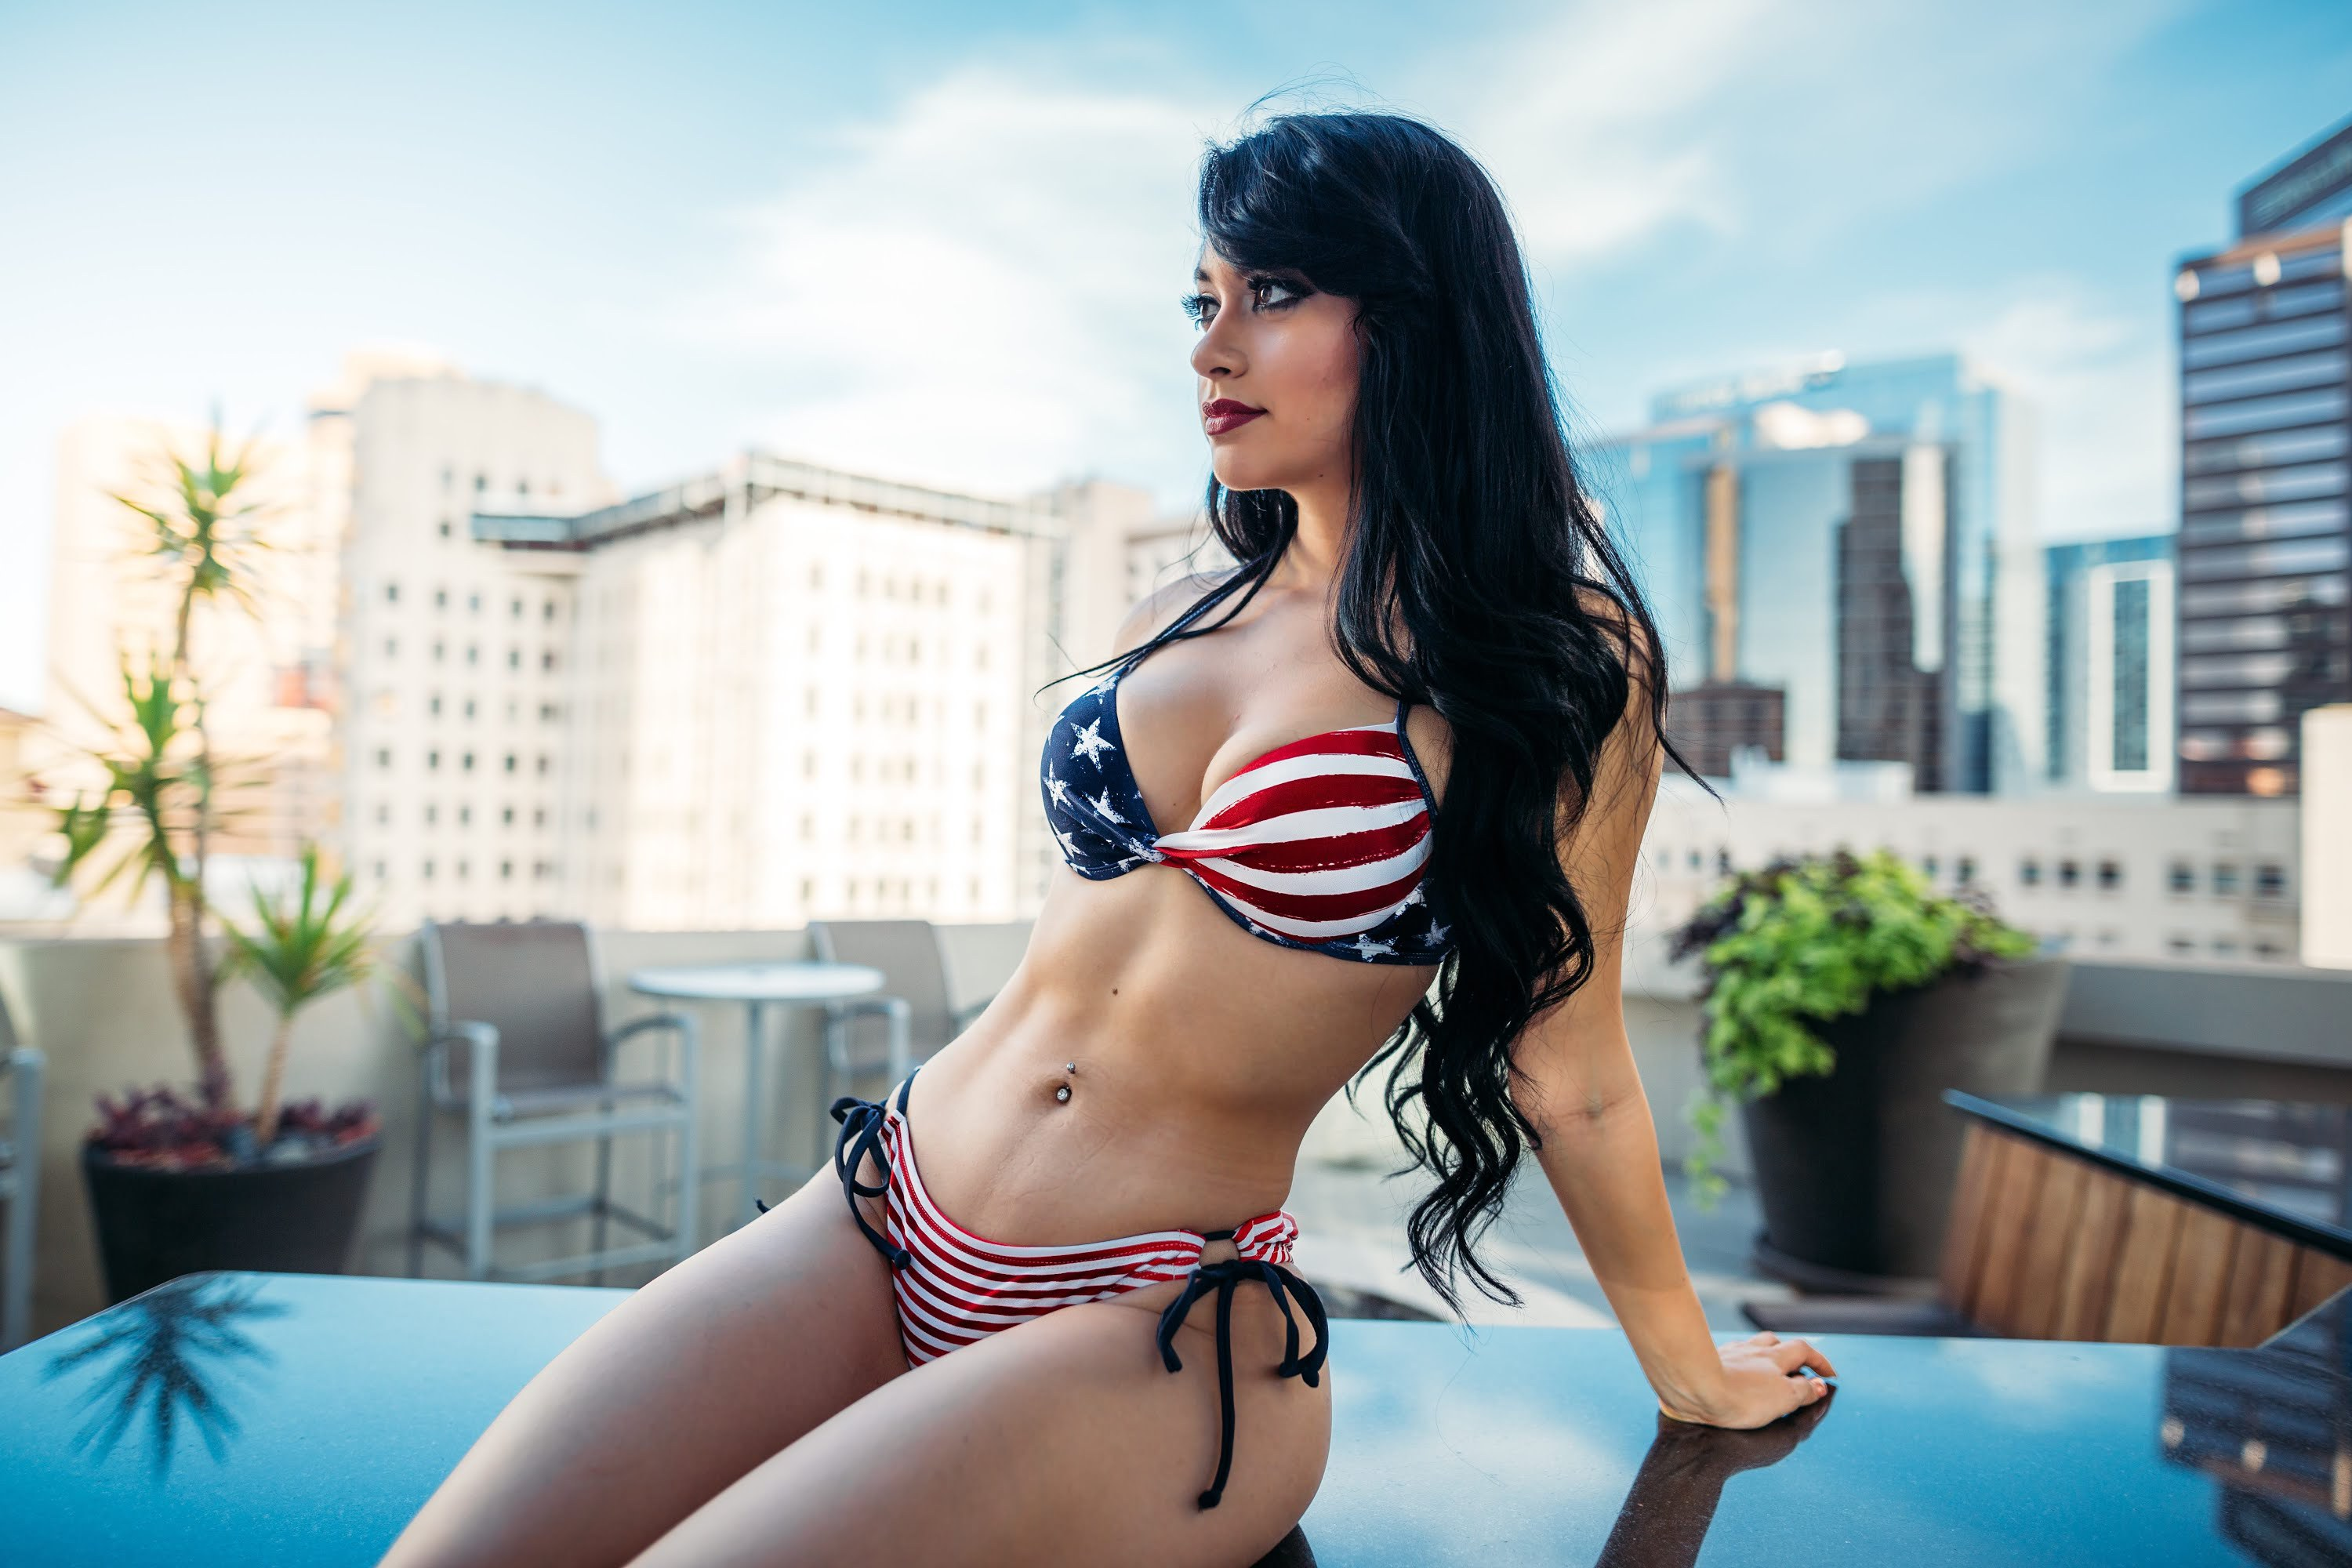 Jailyne Ojeda Ochoa Hot USA Flag Bikini - Jailyne Ojeda Ochoa Hot USA Flag Bikini